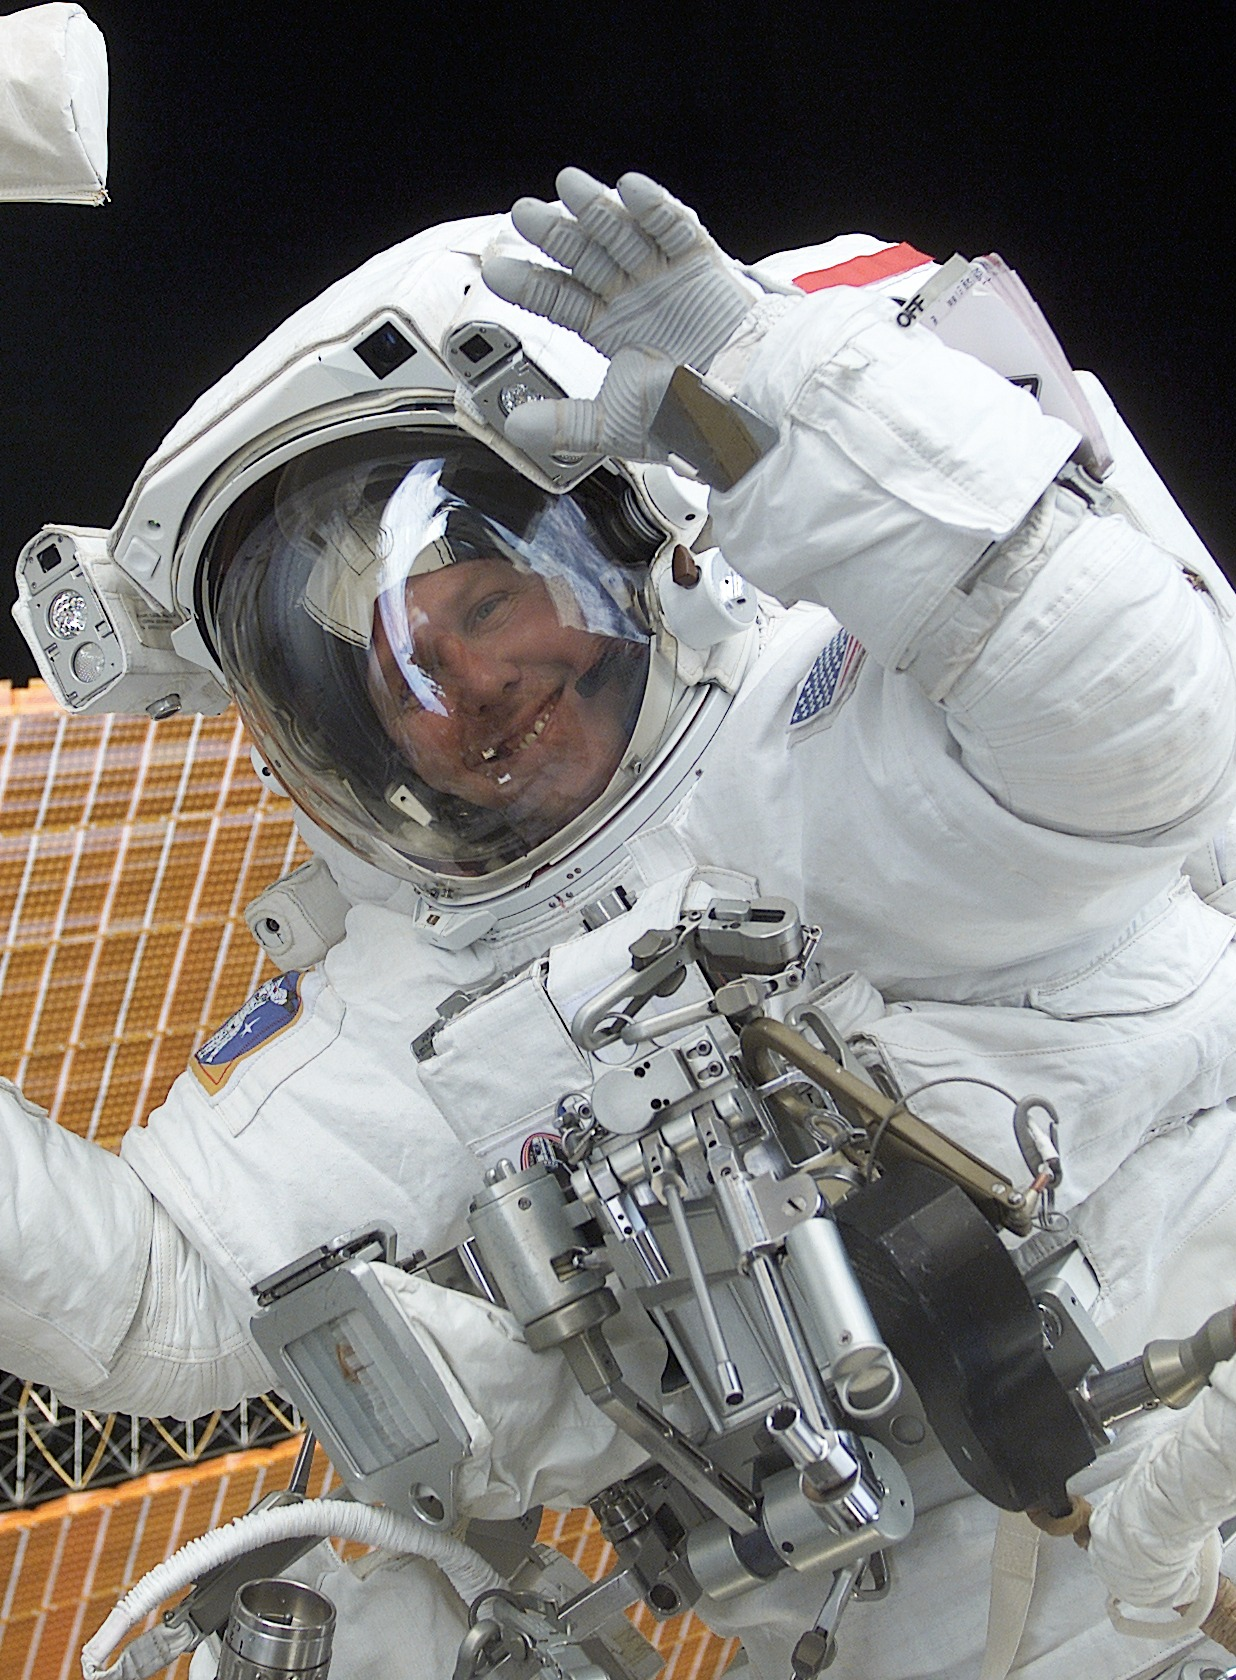 Astronaut Waving Hand - Pics about space